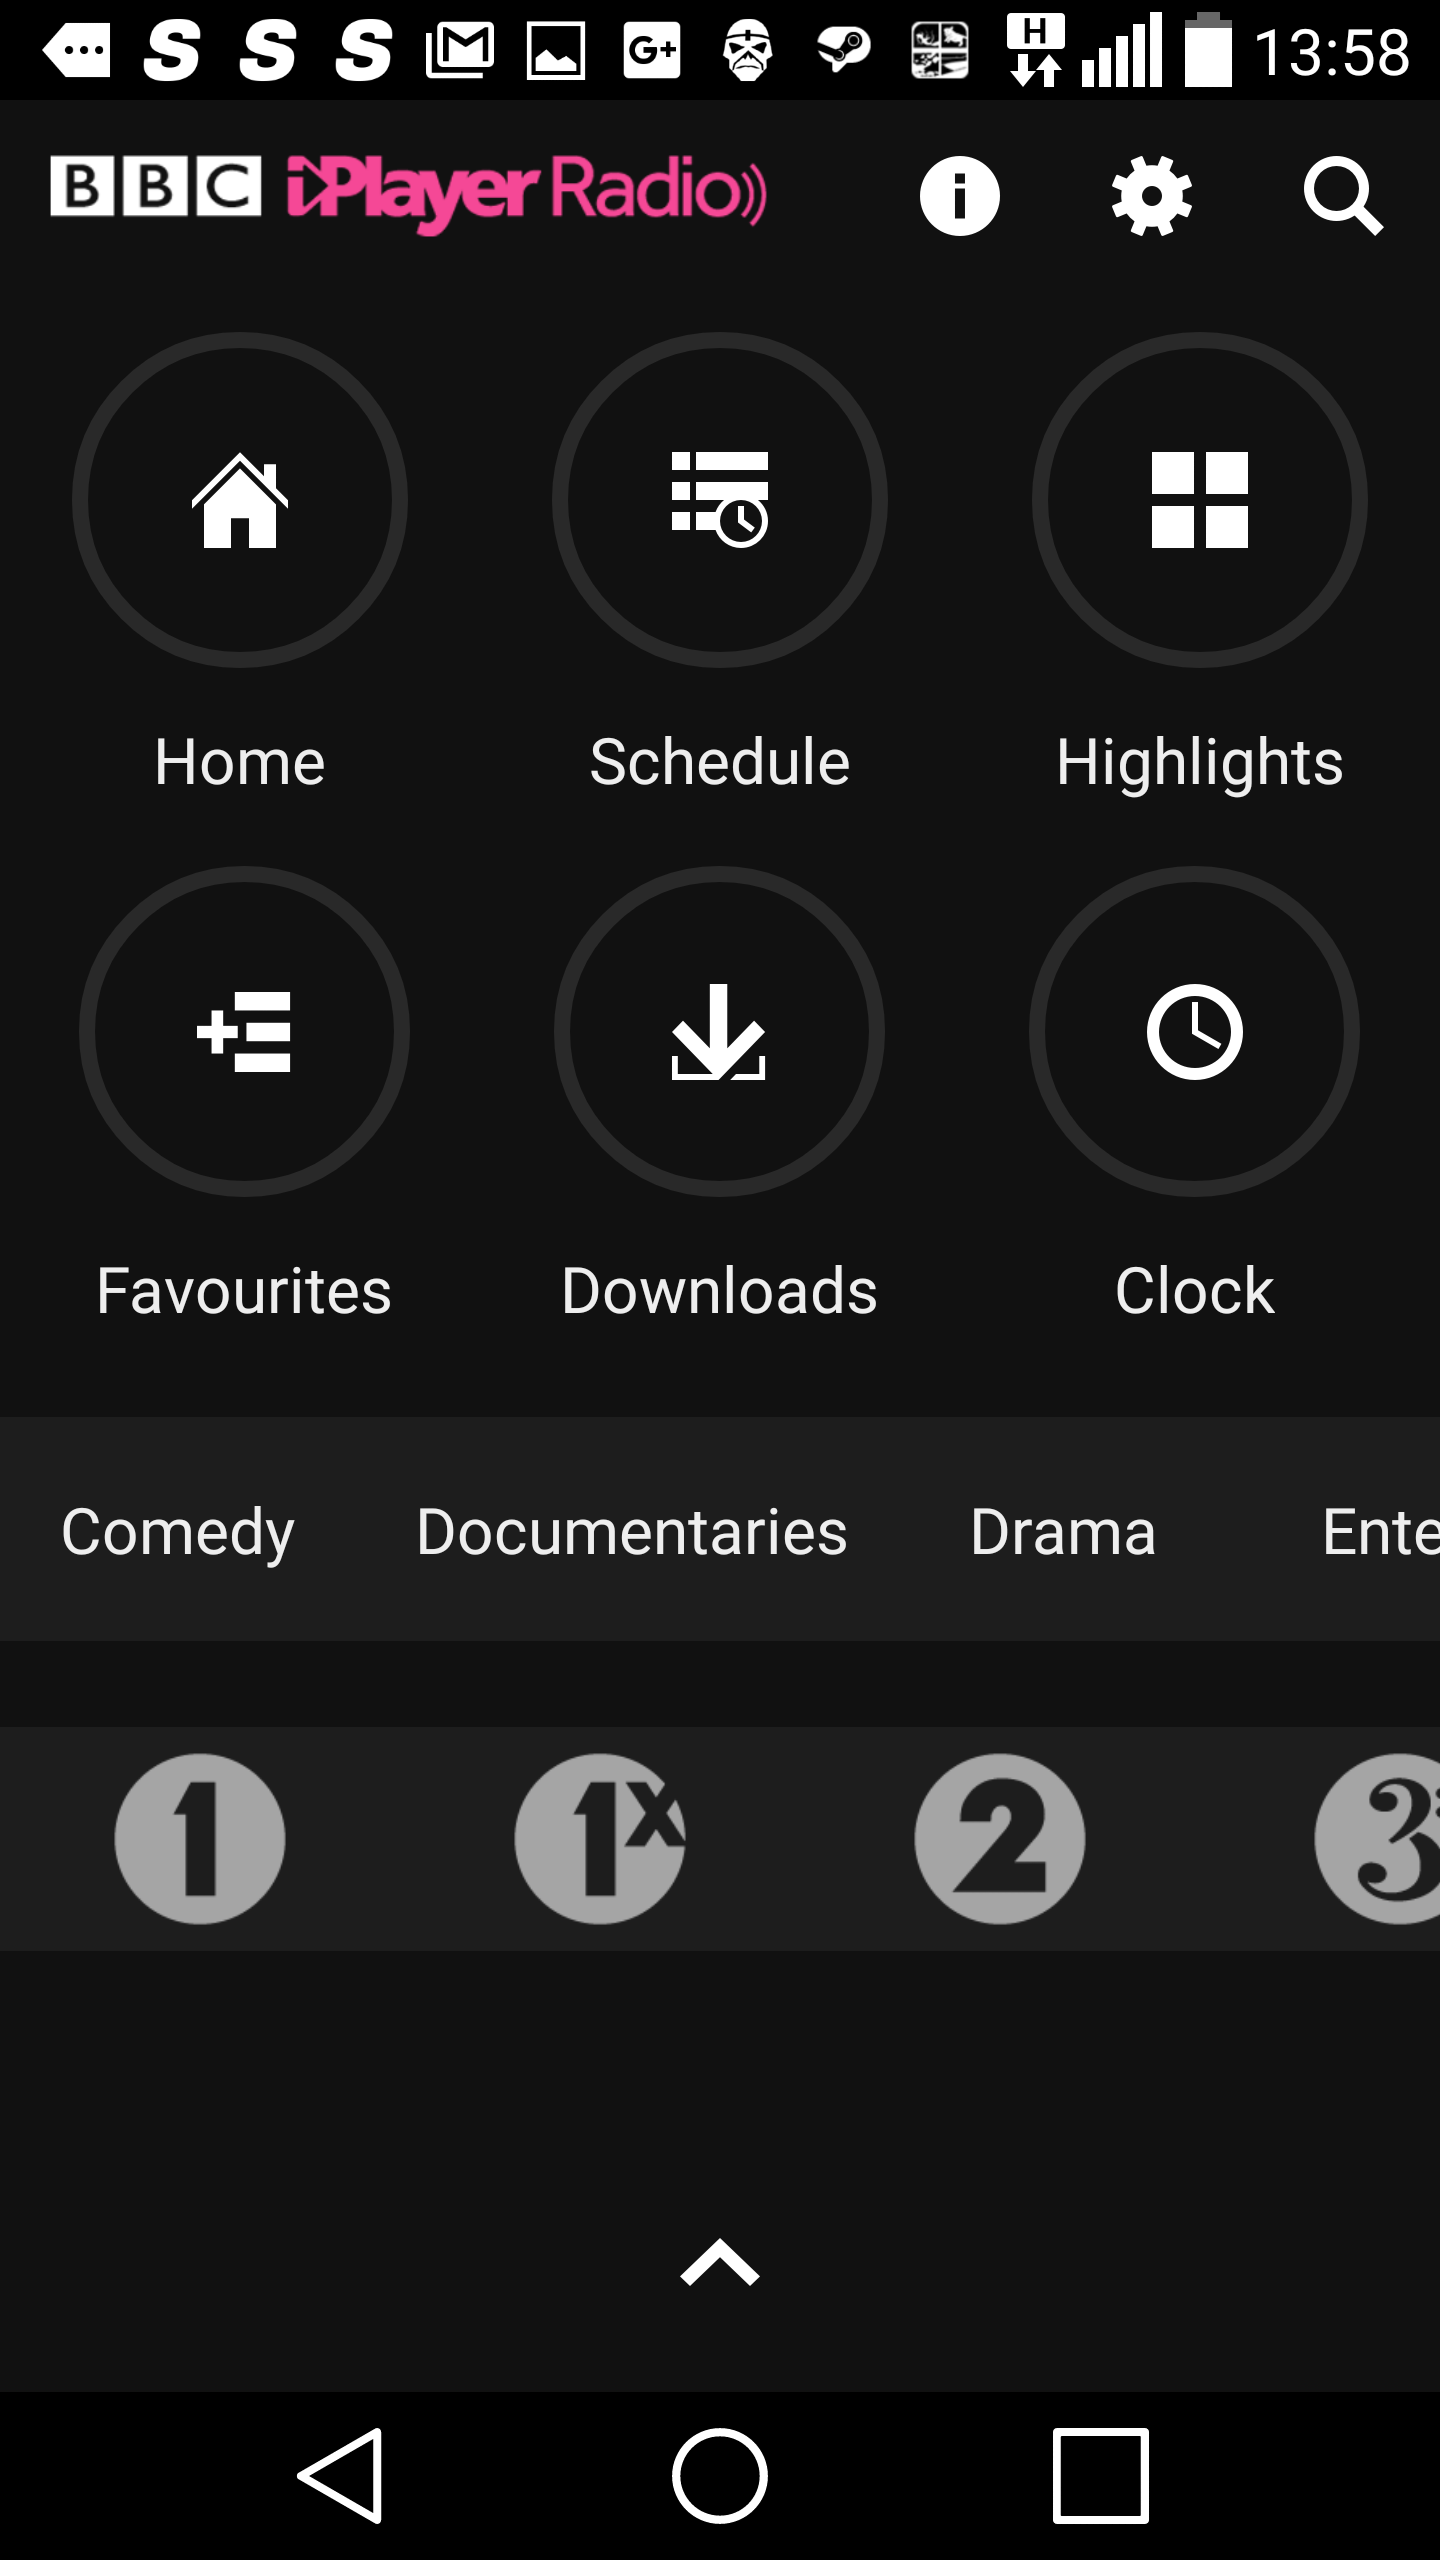 Bbc iplayer app now supports downloads on nearly all android devices.